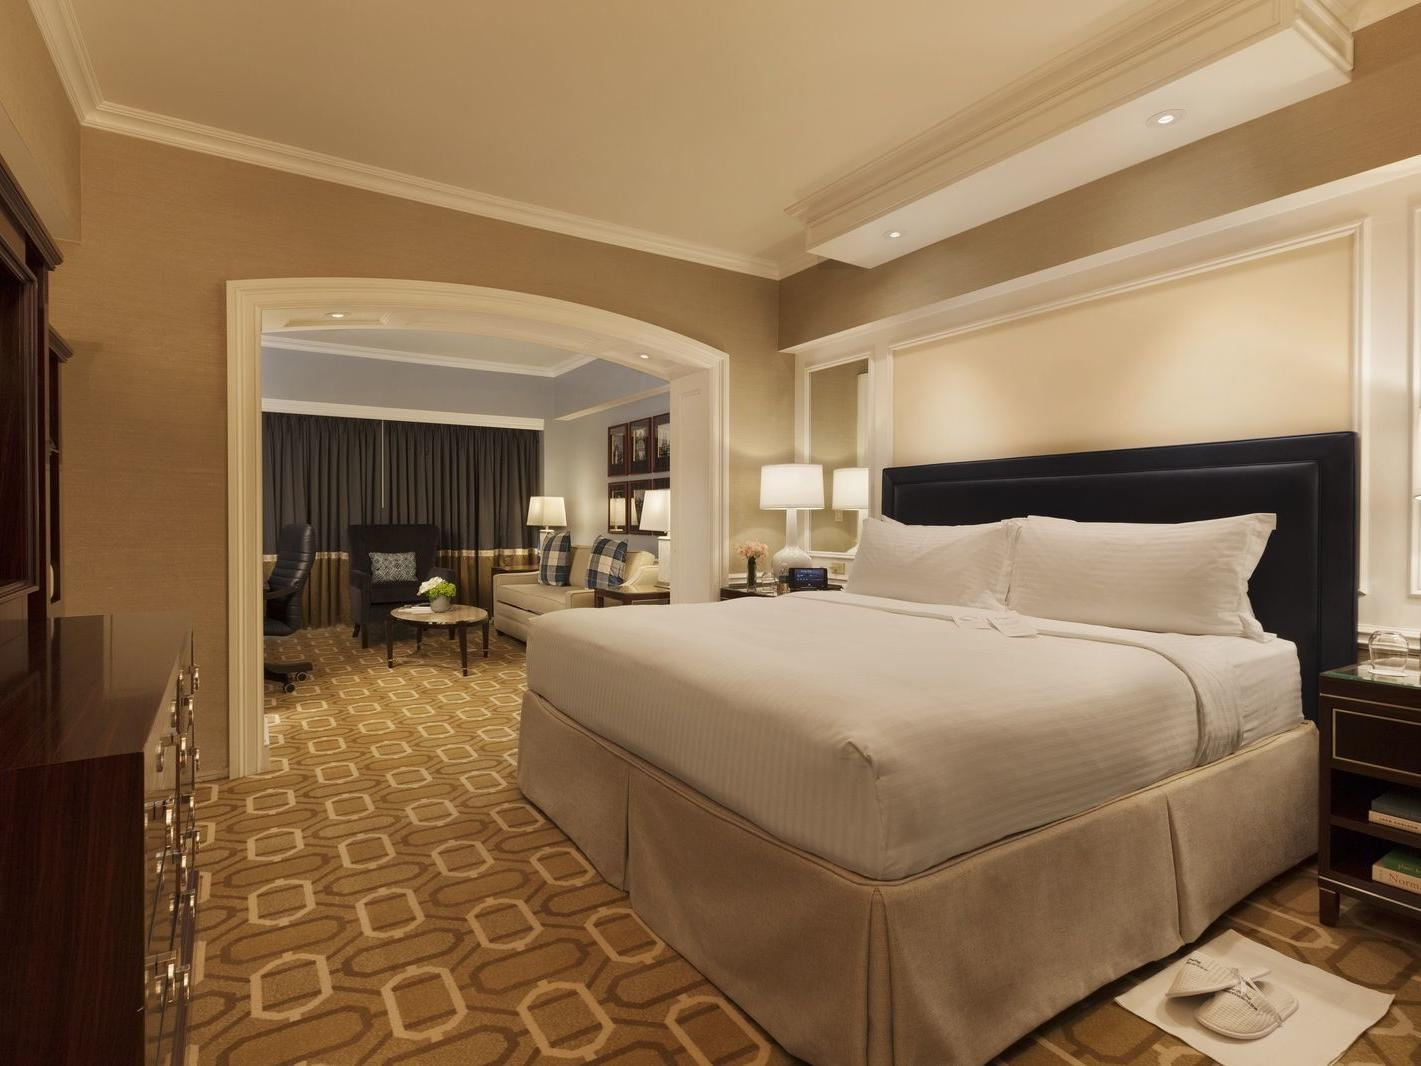 Plush king bed and seating area